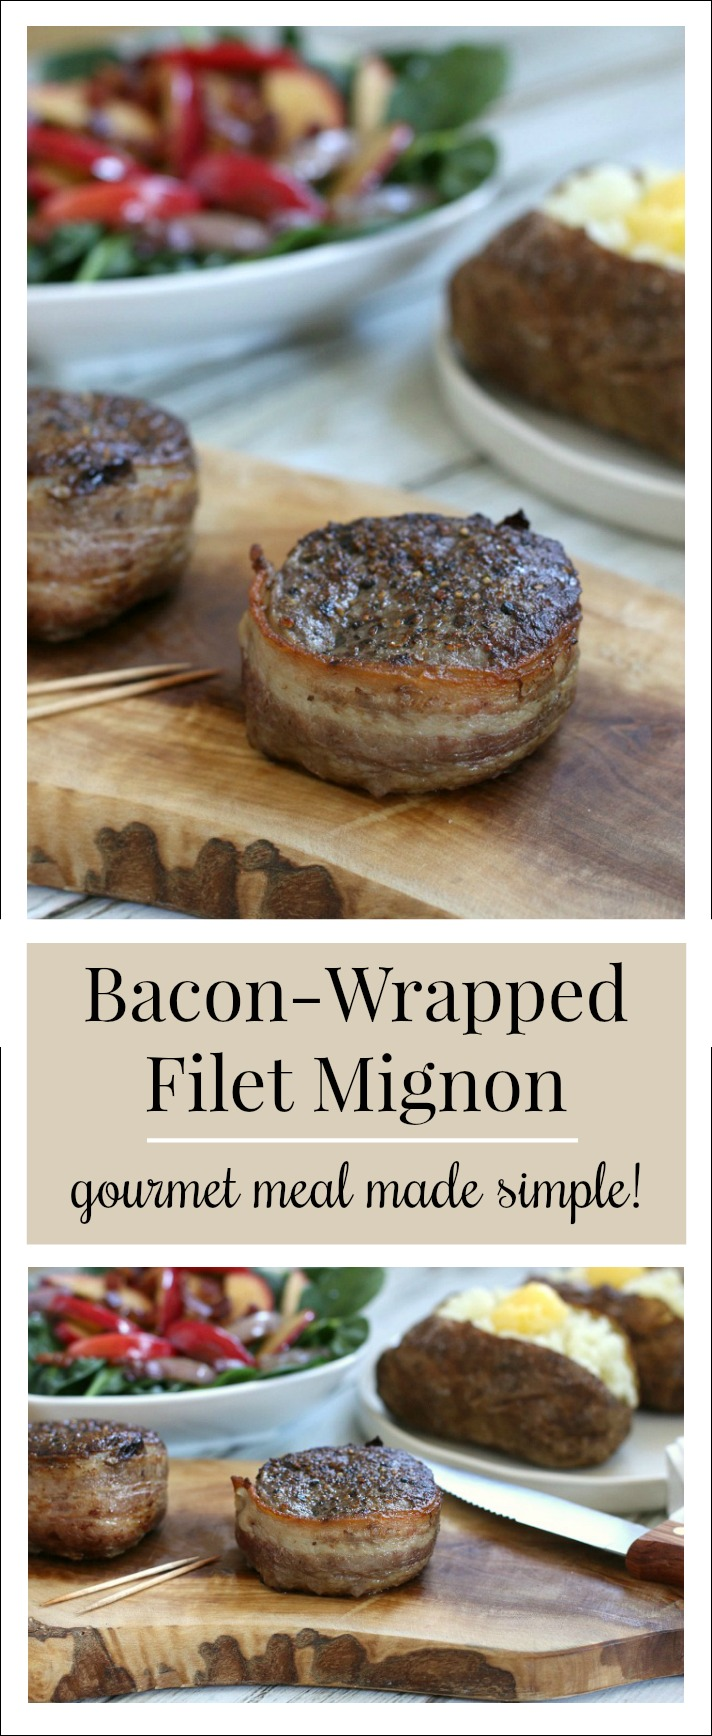 A perfectly seared, bacon-wrapped filet mignon is a delicious delicacy that's deceivingly simple to prepare! Make any night a special occasion!